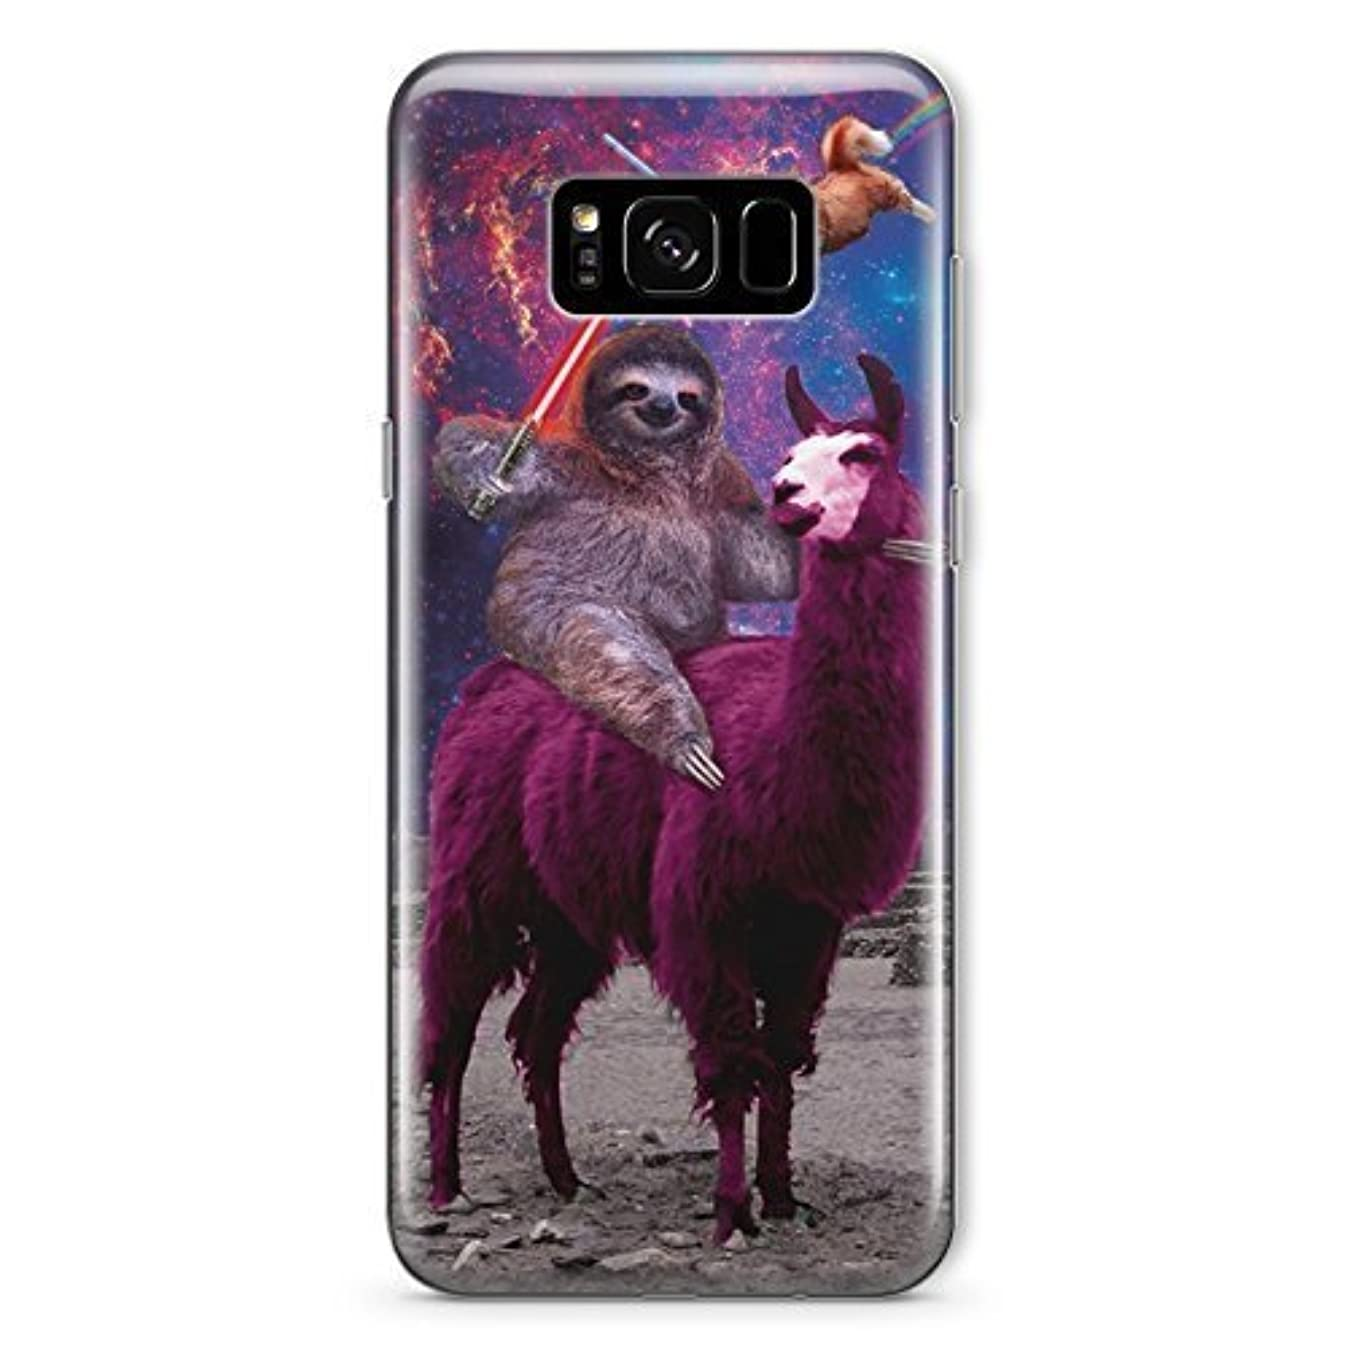 Funny Star Wars Samsung Note 8 Case Animal Jedi Rainbow Cat Llama Squad Sith Lightsaber Fight Clear Durable Plastic Case for Samsung Note 8 Sloth Vader MA1304